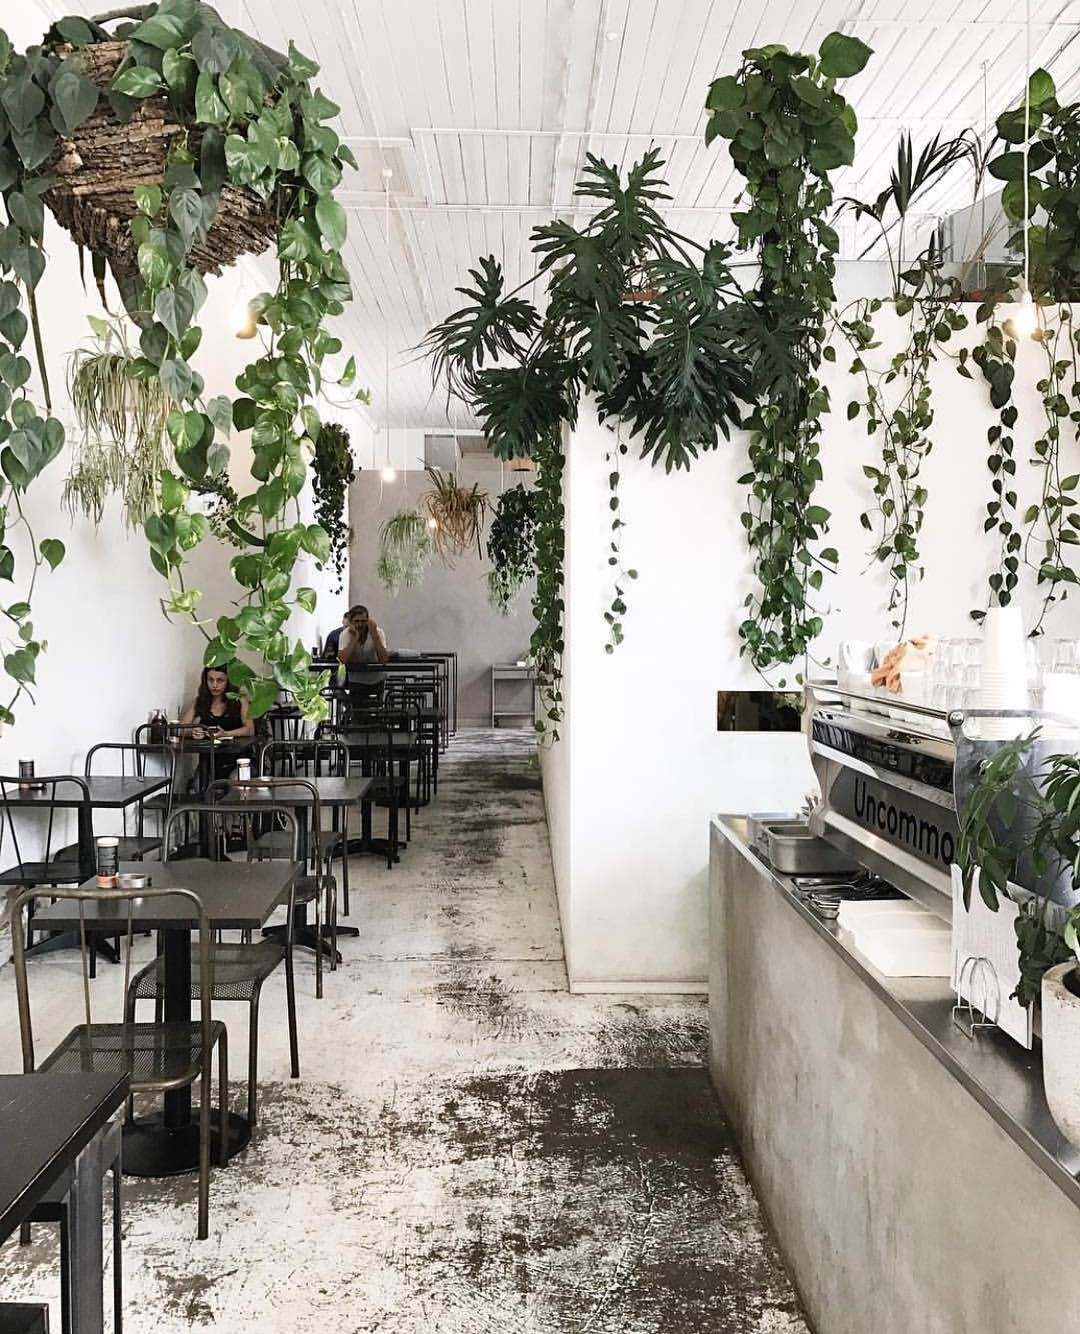 Cafe Plants Cafe Interior Design Cafe Plants Cafe Interior